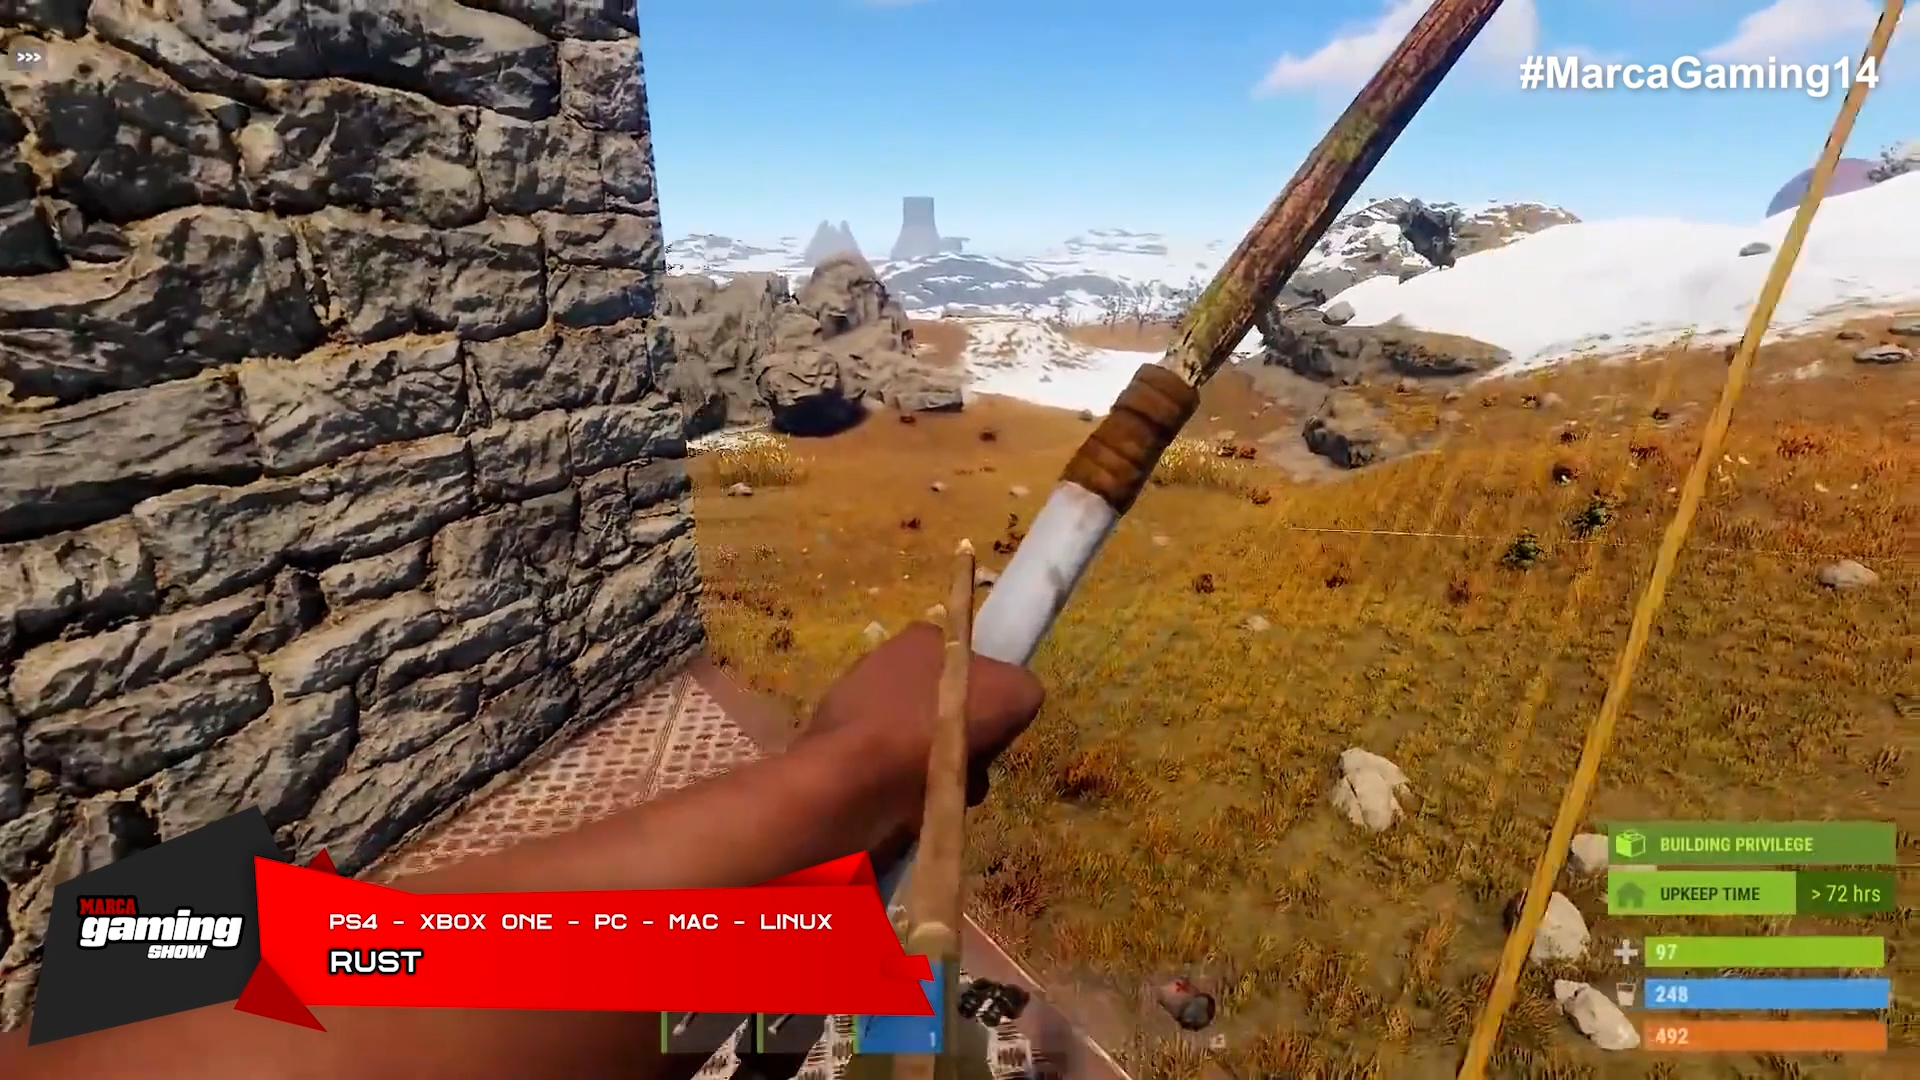 Rust (PC - PS4 - XBOX ONE)